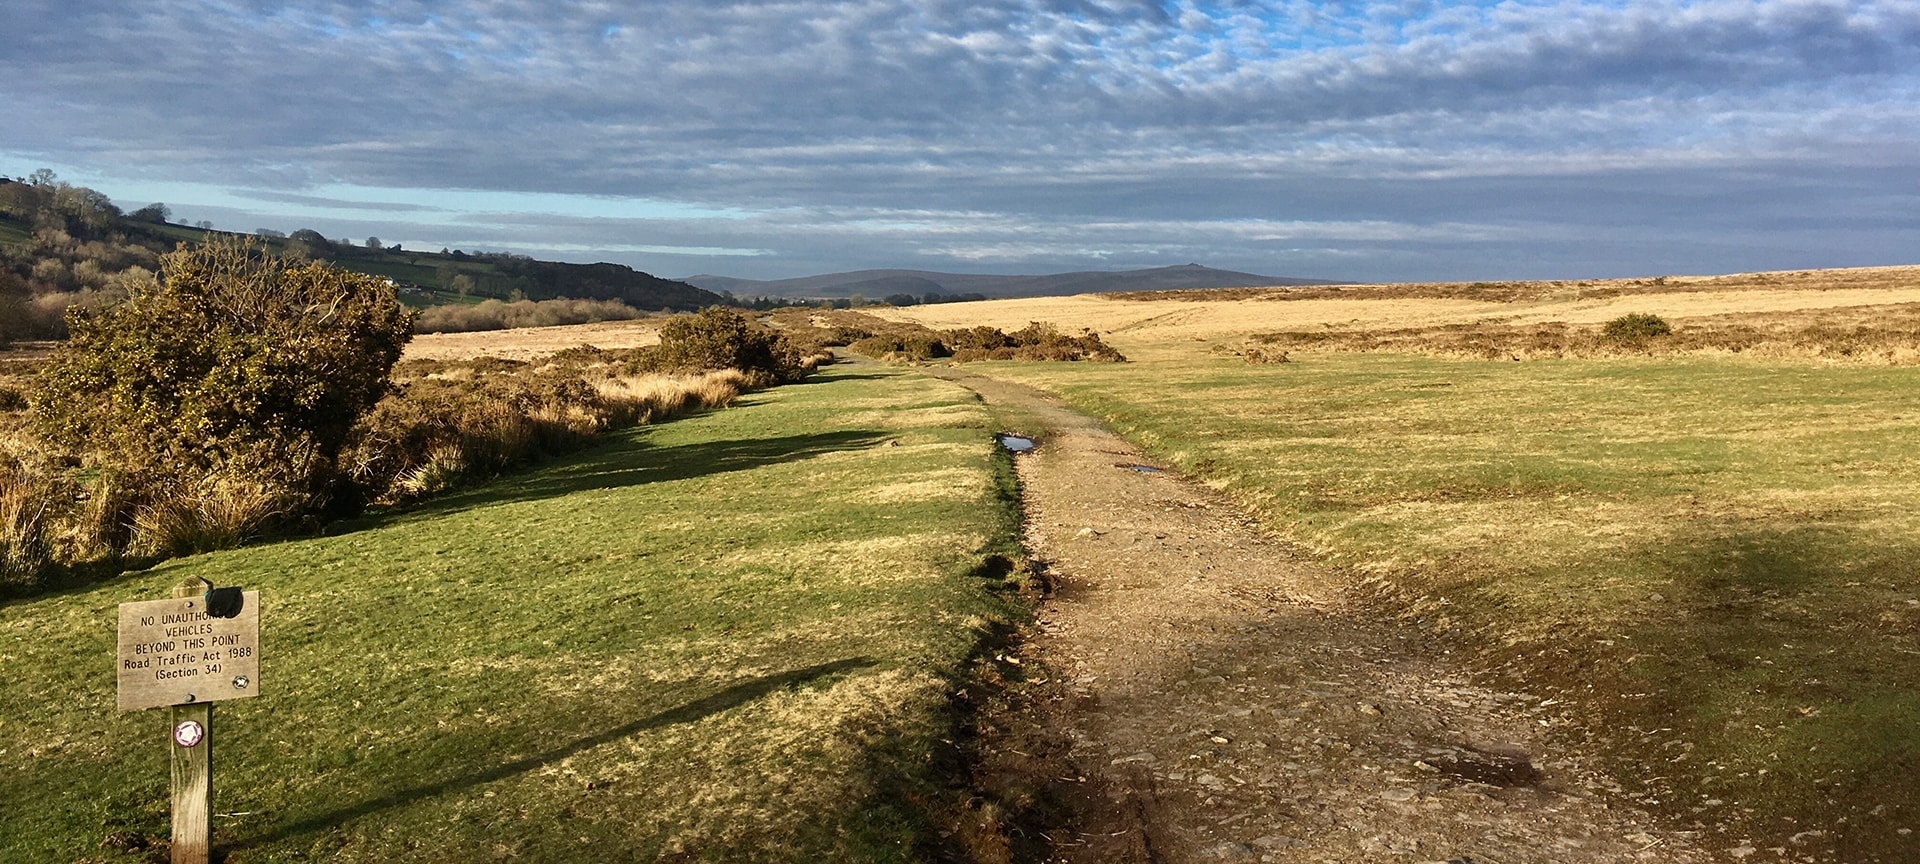 Dartmoor really does have something for everyone; history lovers can explore castle ruins and learn about local myths and legends at our museums or on a guided walk, families have plenty of exciting attractions to choose from, while there's lots of opportunities for rambling over tors, cycling up challenging hills and staying active in the great outdoors.